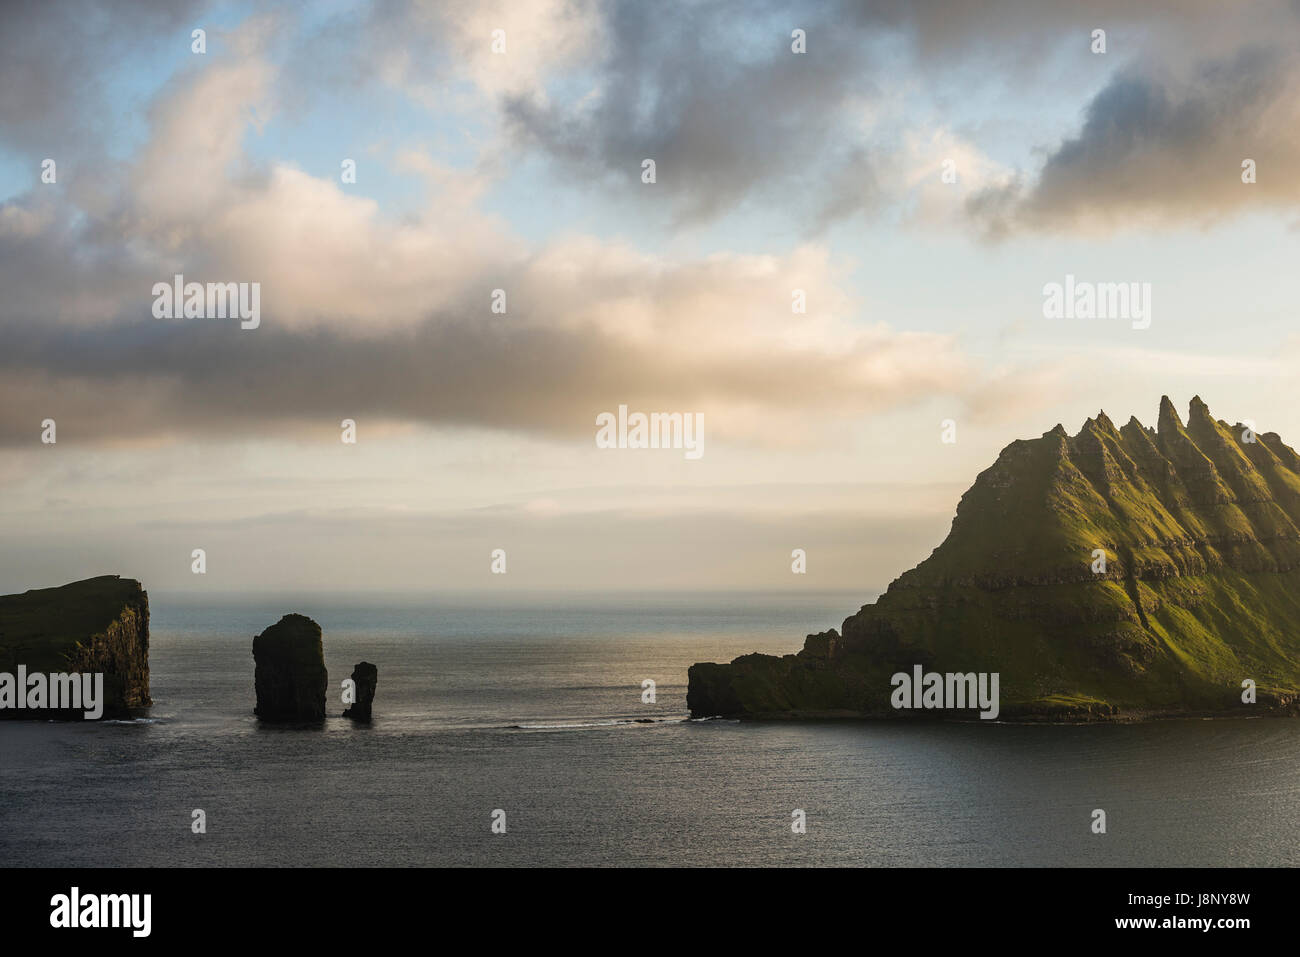 Rock formations in sea Banque D'Images